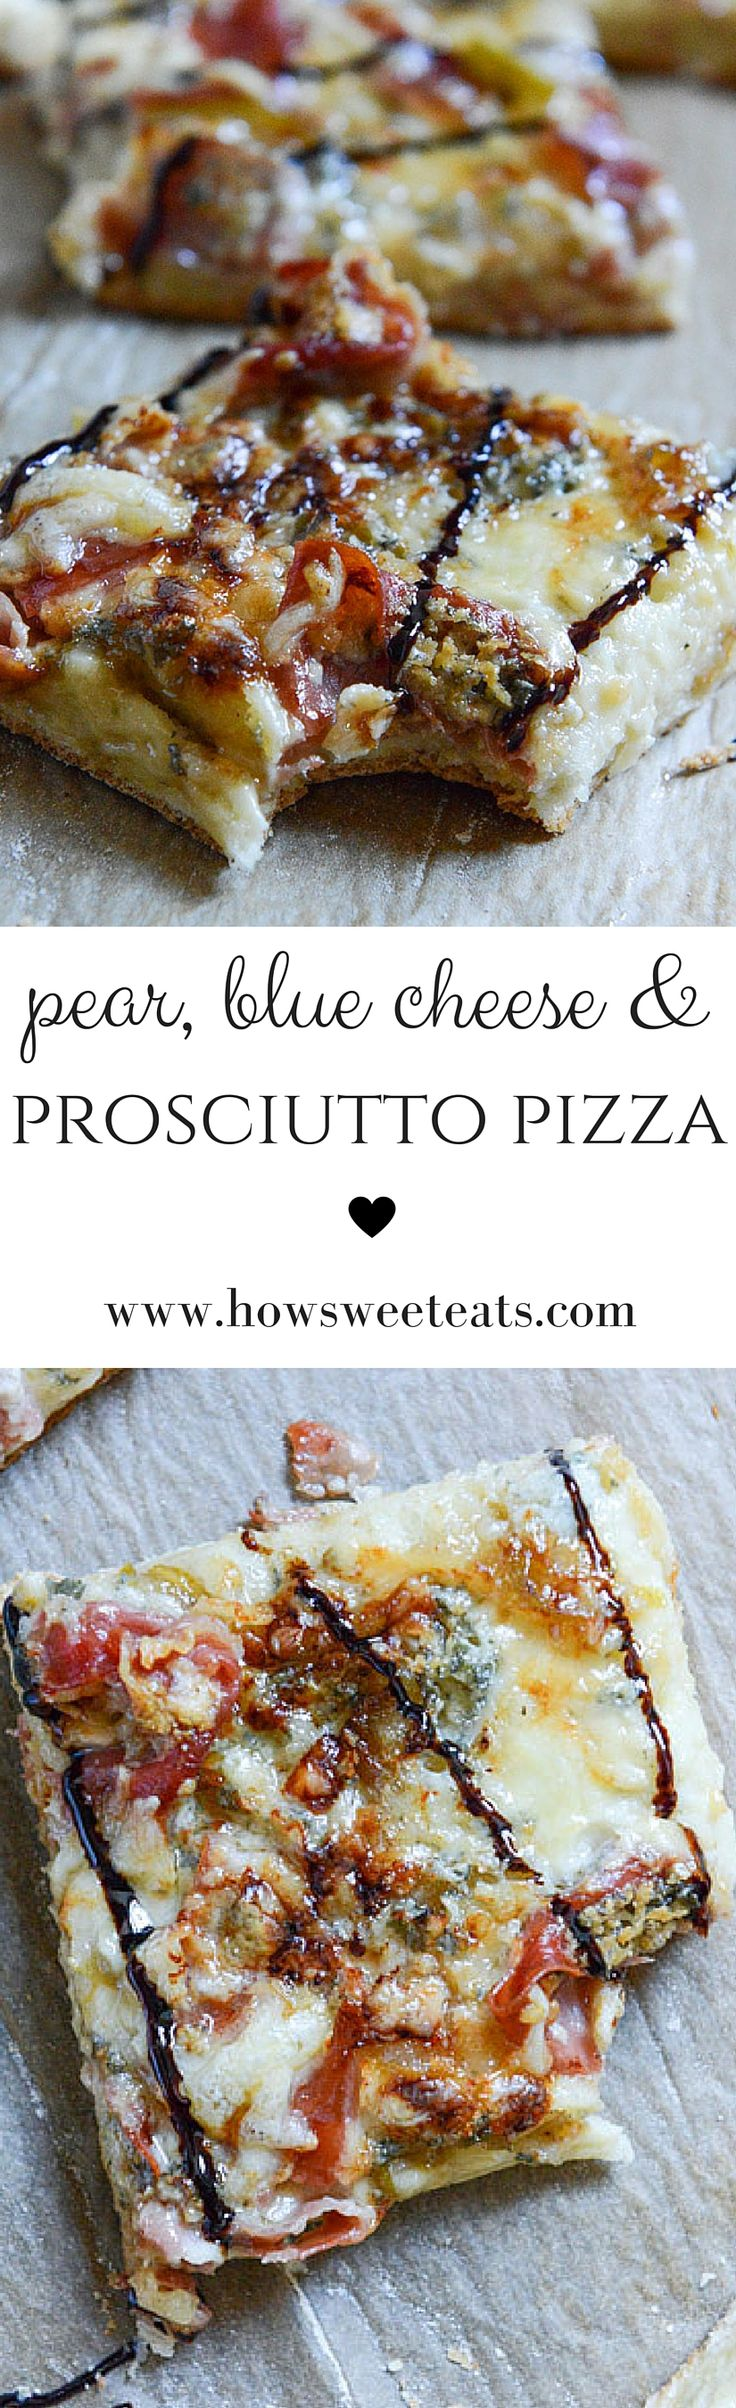 Caramelized Pear, Crispy Prosciutto and Blue Cheese Pizza I howsweeteats.com @howsweeteats #pizza